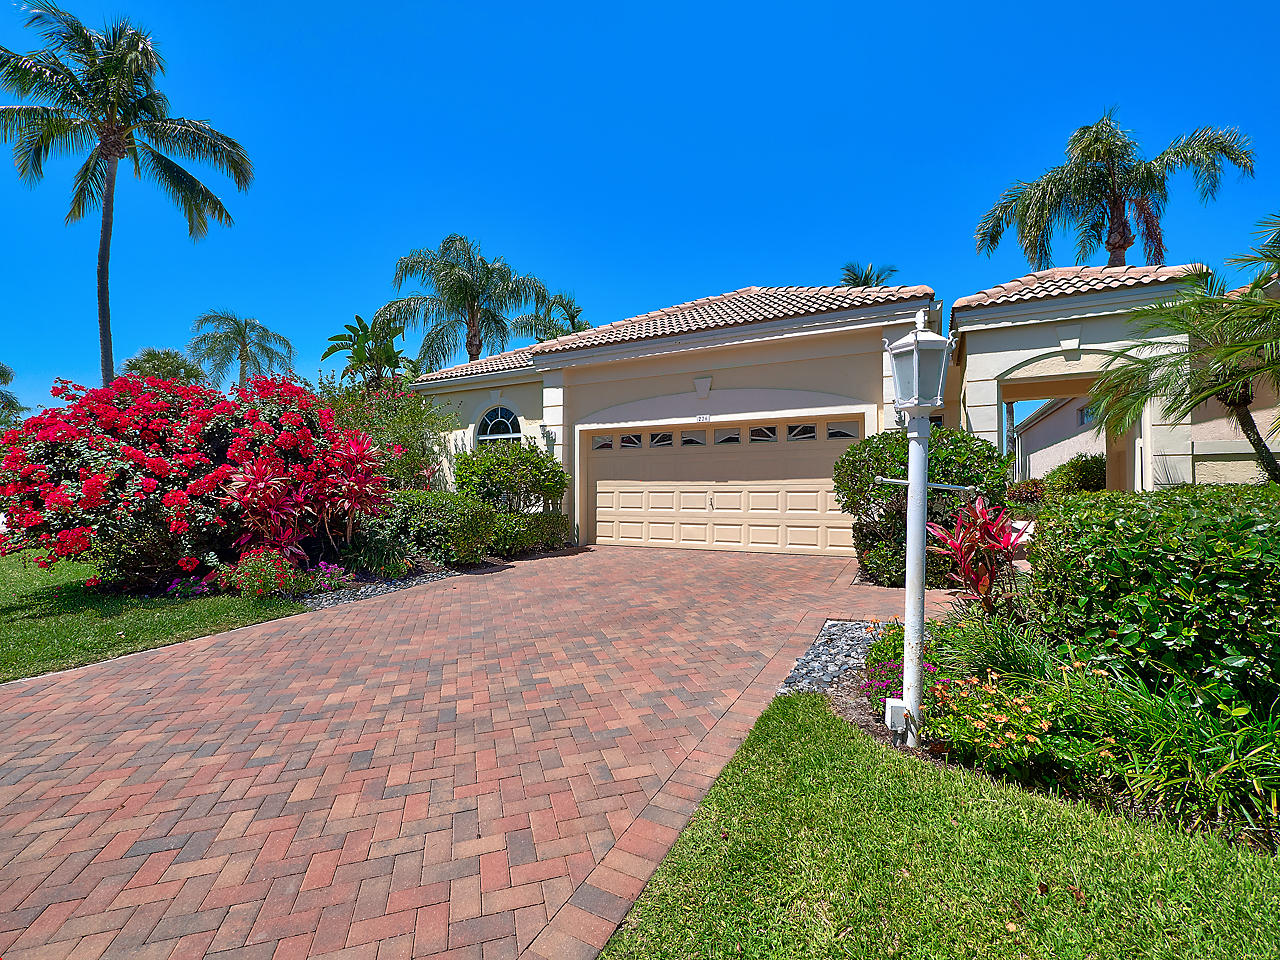 226 Coral Cay Terrace, Palm Beach Gardens, Florida 33418, 3 Bedrooms Bedrooms, ,3 BathroomsBathrooms,Single Family,For Sale,CORAL CAY,Coral Cay,RX-10424599